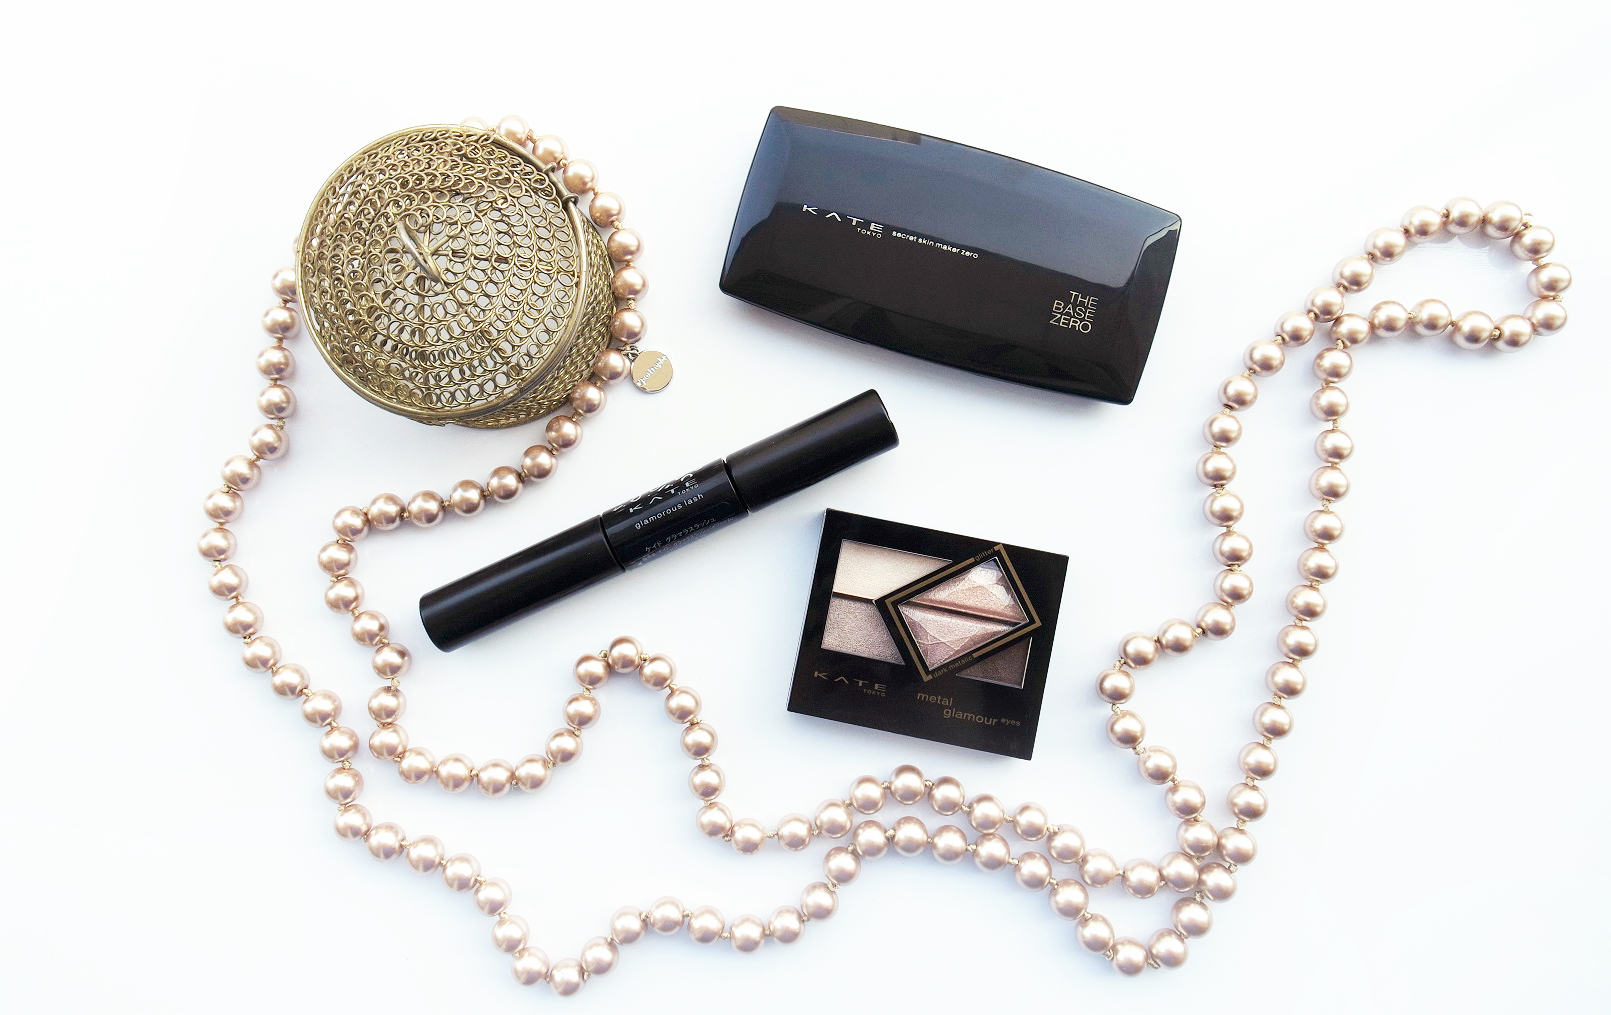 a30b2eea5a J-Beauty Love  My three favorite things from Kate Tokyo s new collection